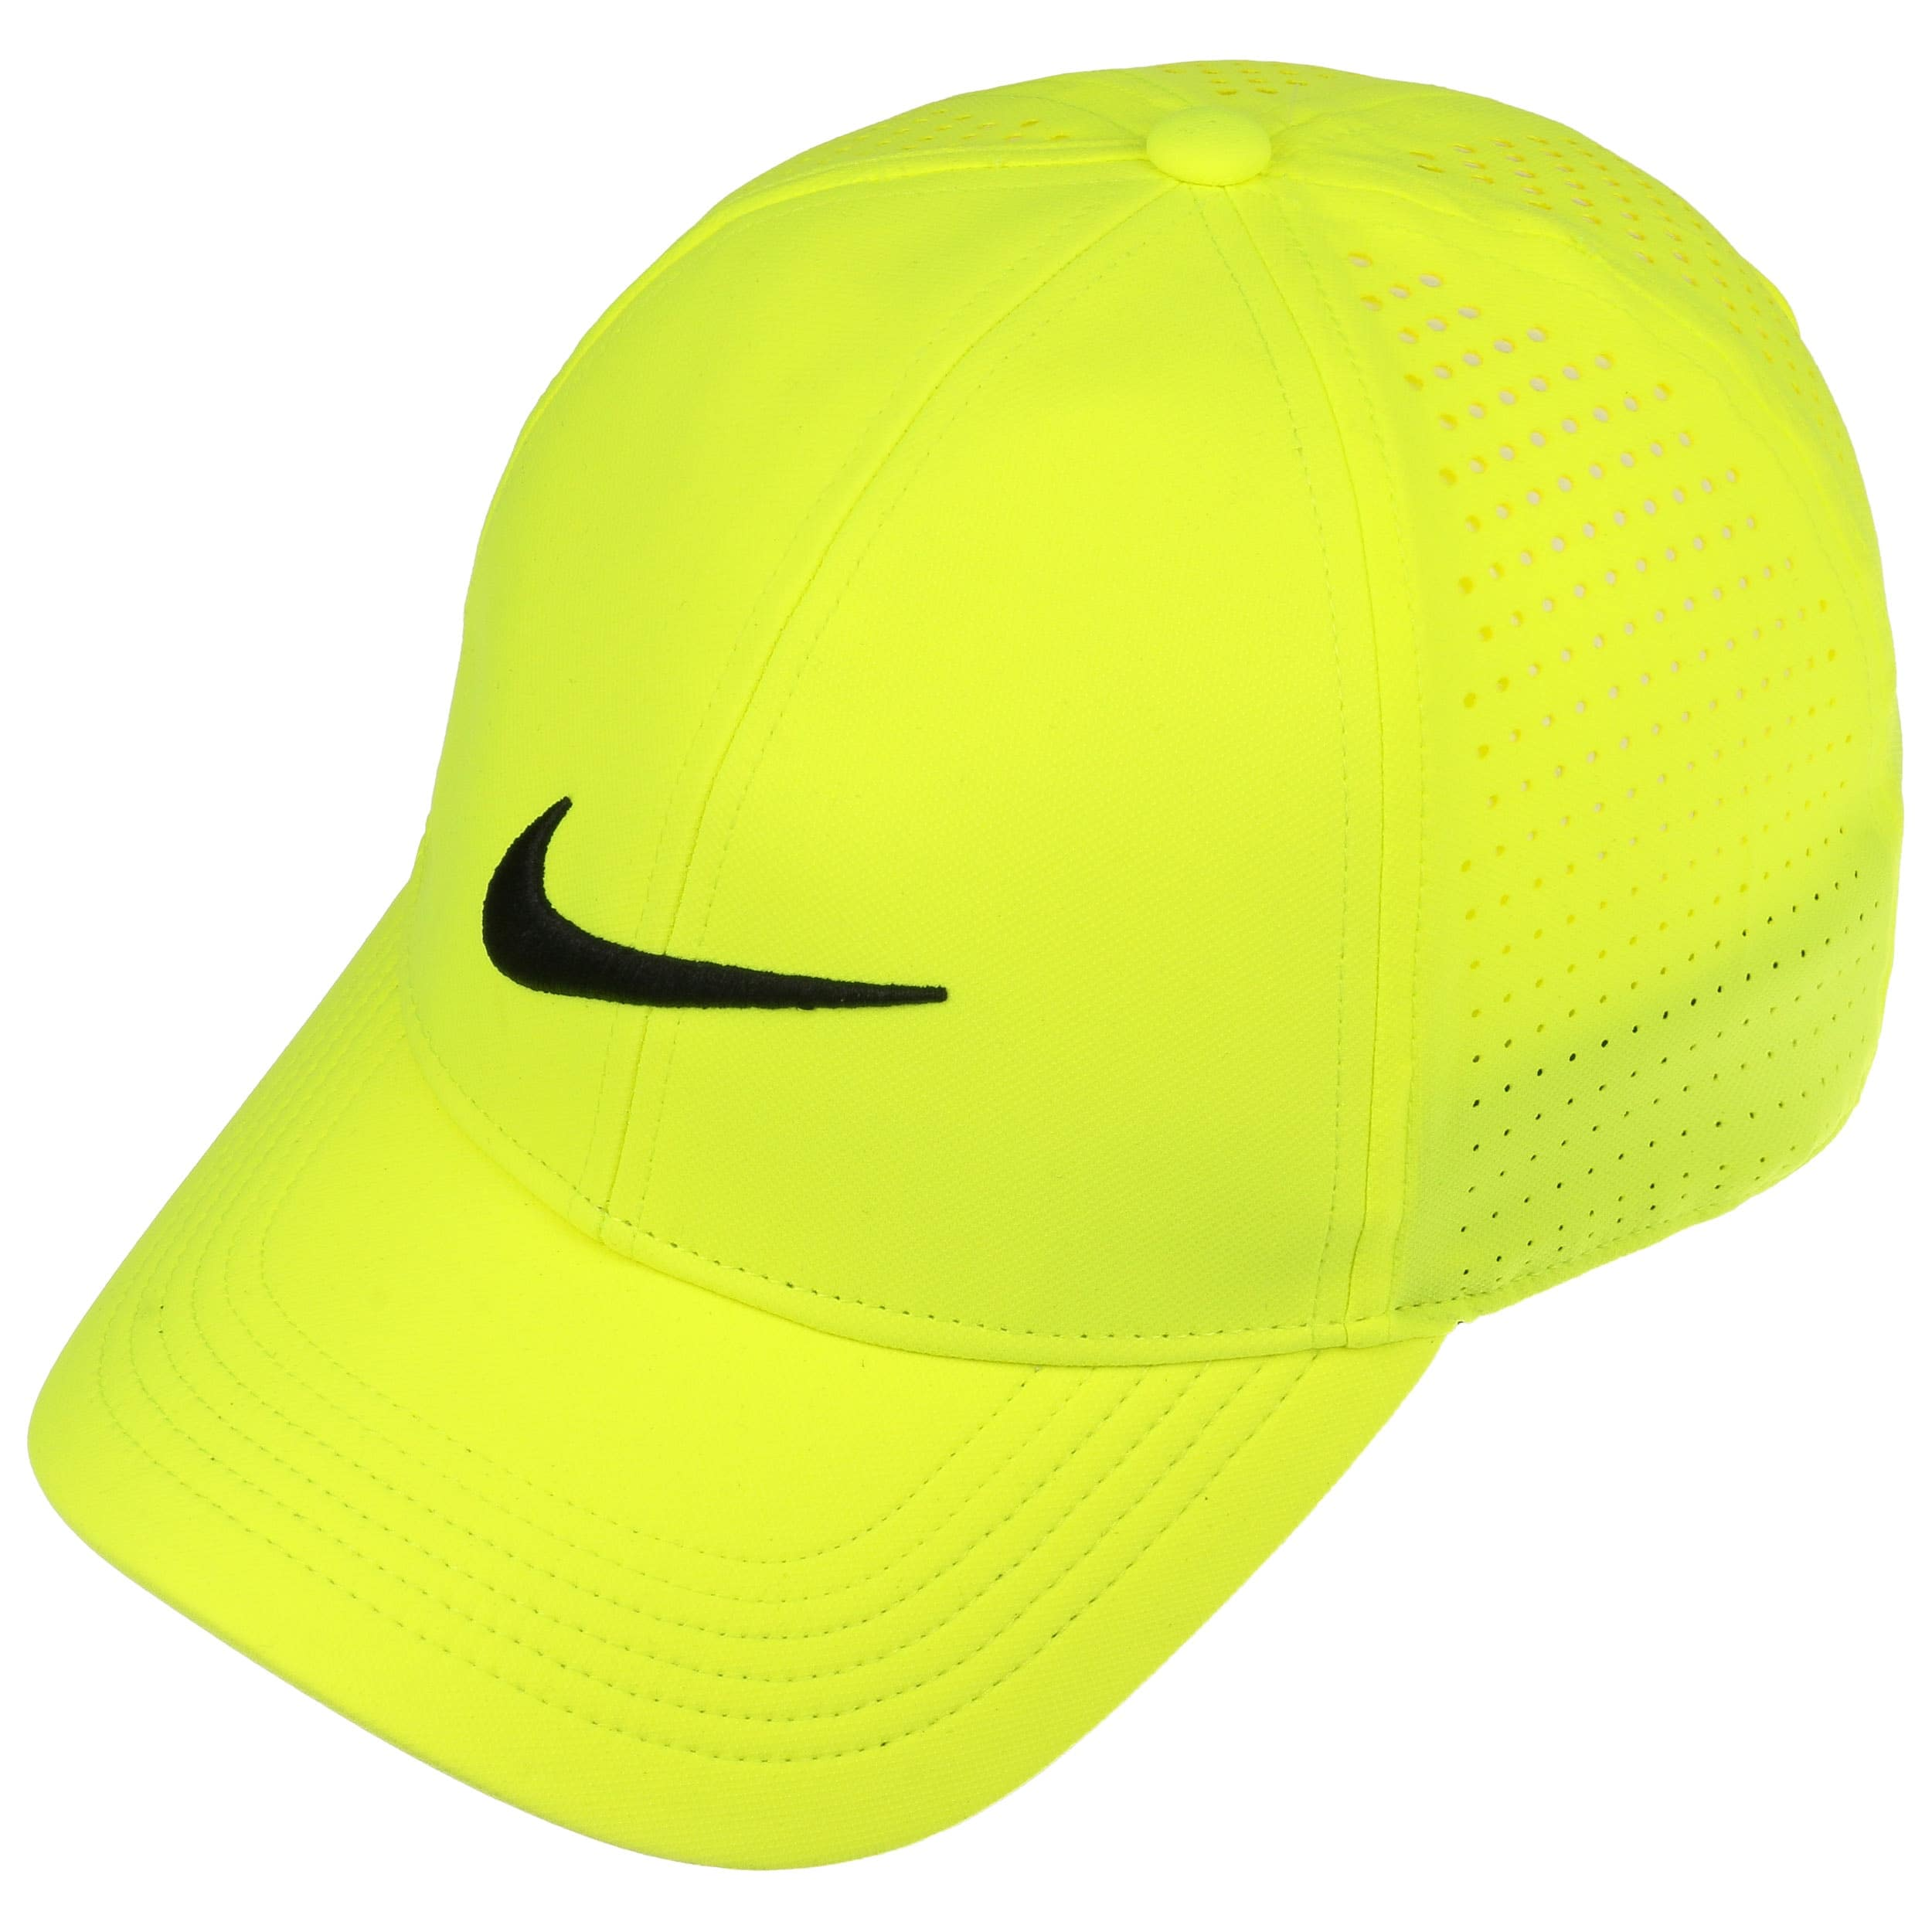 ... Legacy 91 Perf Strapback Cap by Nike - neon green 1 ... fea61566d83